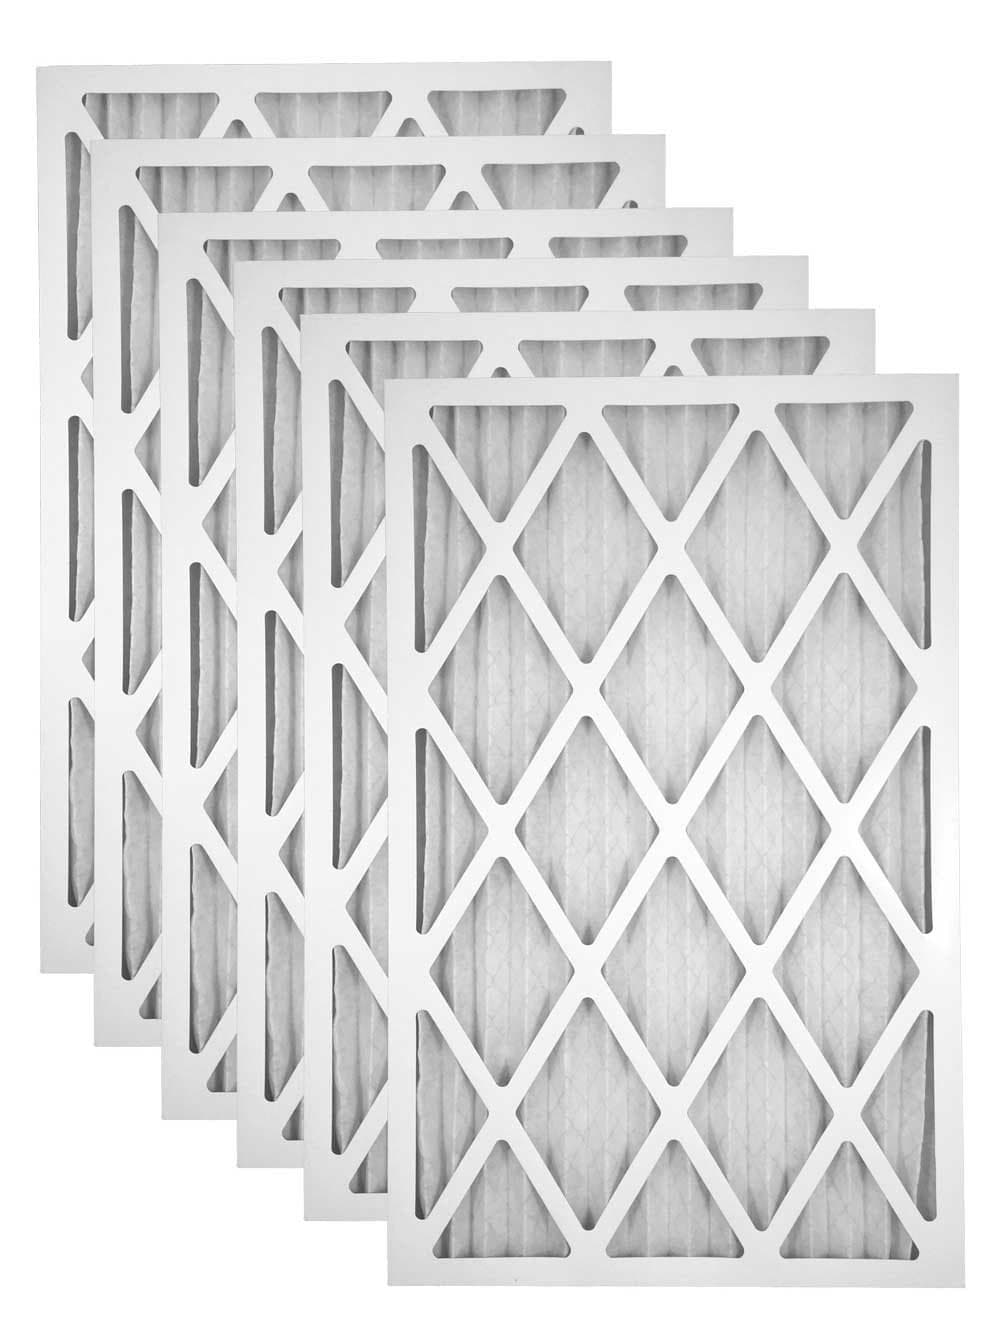 25x25x1 Merv 11 Pleated Geothermal Furnace Filter - Case of 6 by Atomic Filters